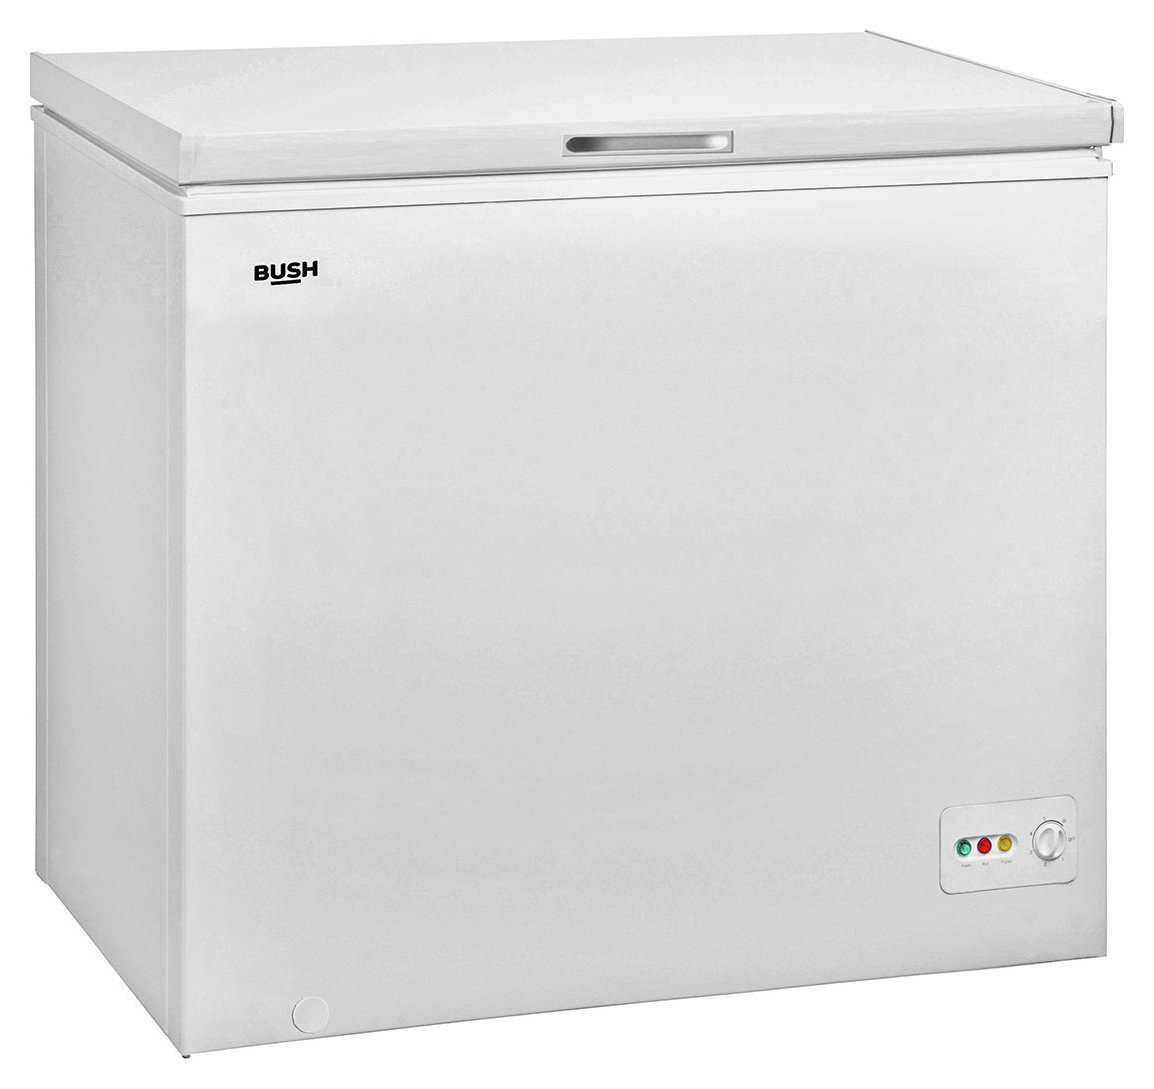 Bush BCF198L Chest Freezer - White Best Price, Cheapest Prices